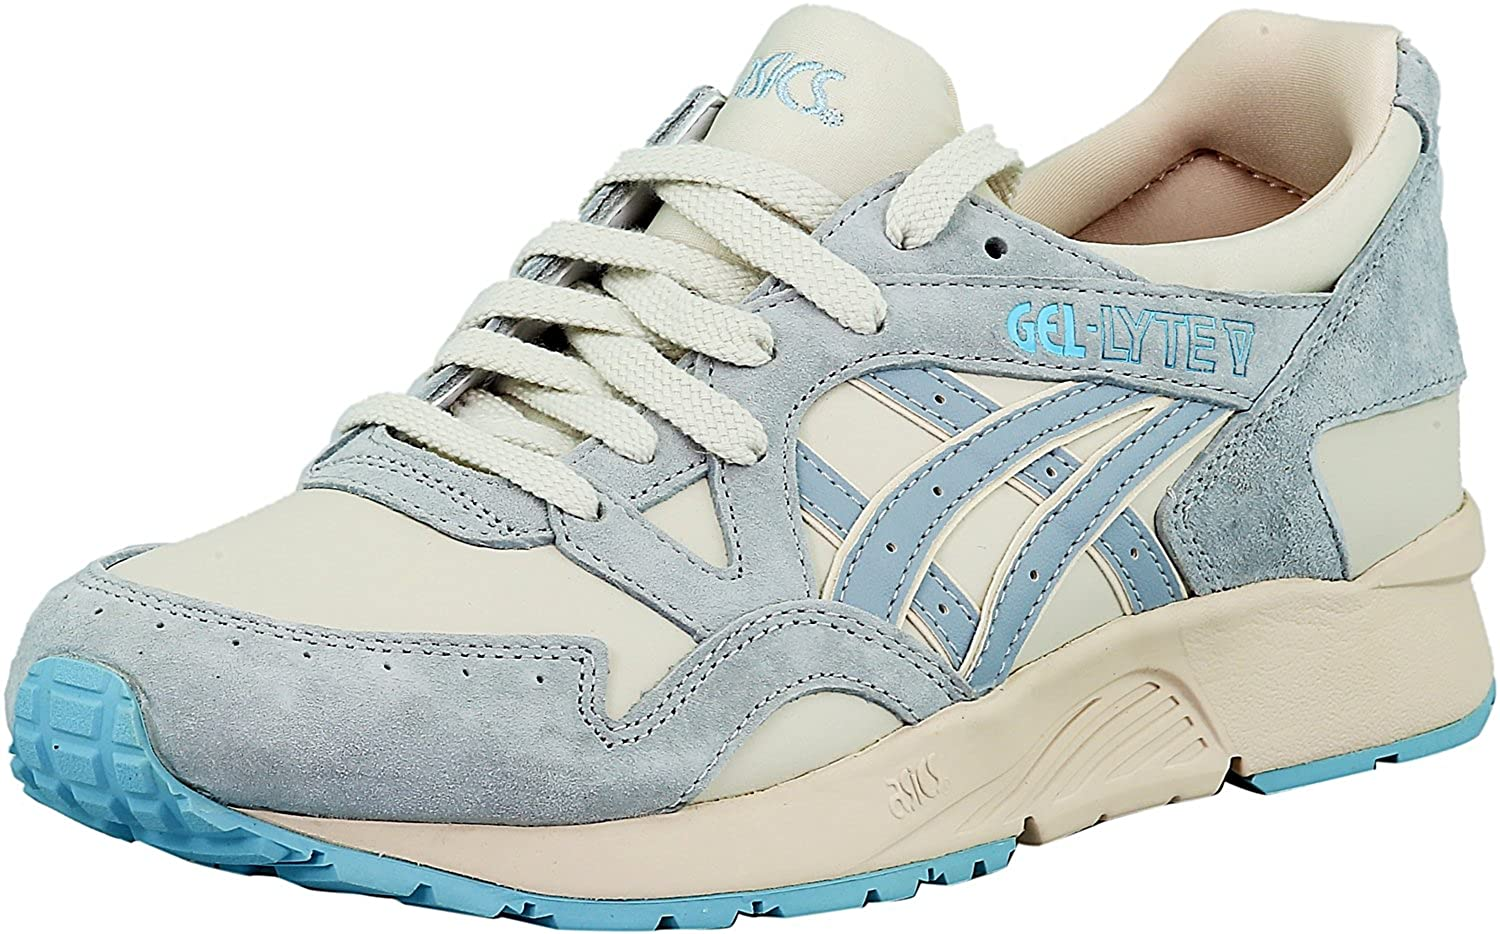 info for 5b91b cd035 Onitsuka Tiger Womens Gel-Lyte V-H6T5L Low Top, Moonbeam Light Grey, Size  8.0 US 6 UK  Amazon.co.uk  Shoes   Bags